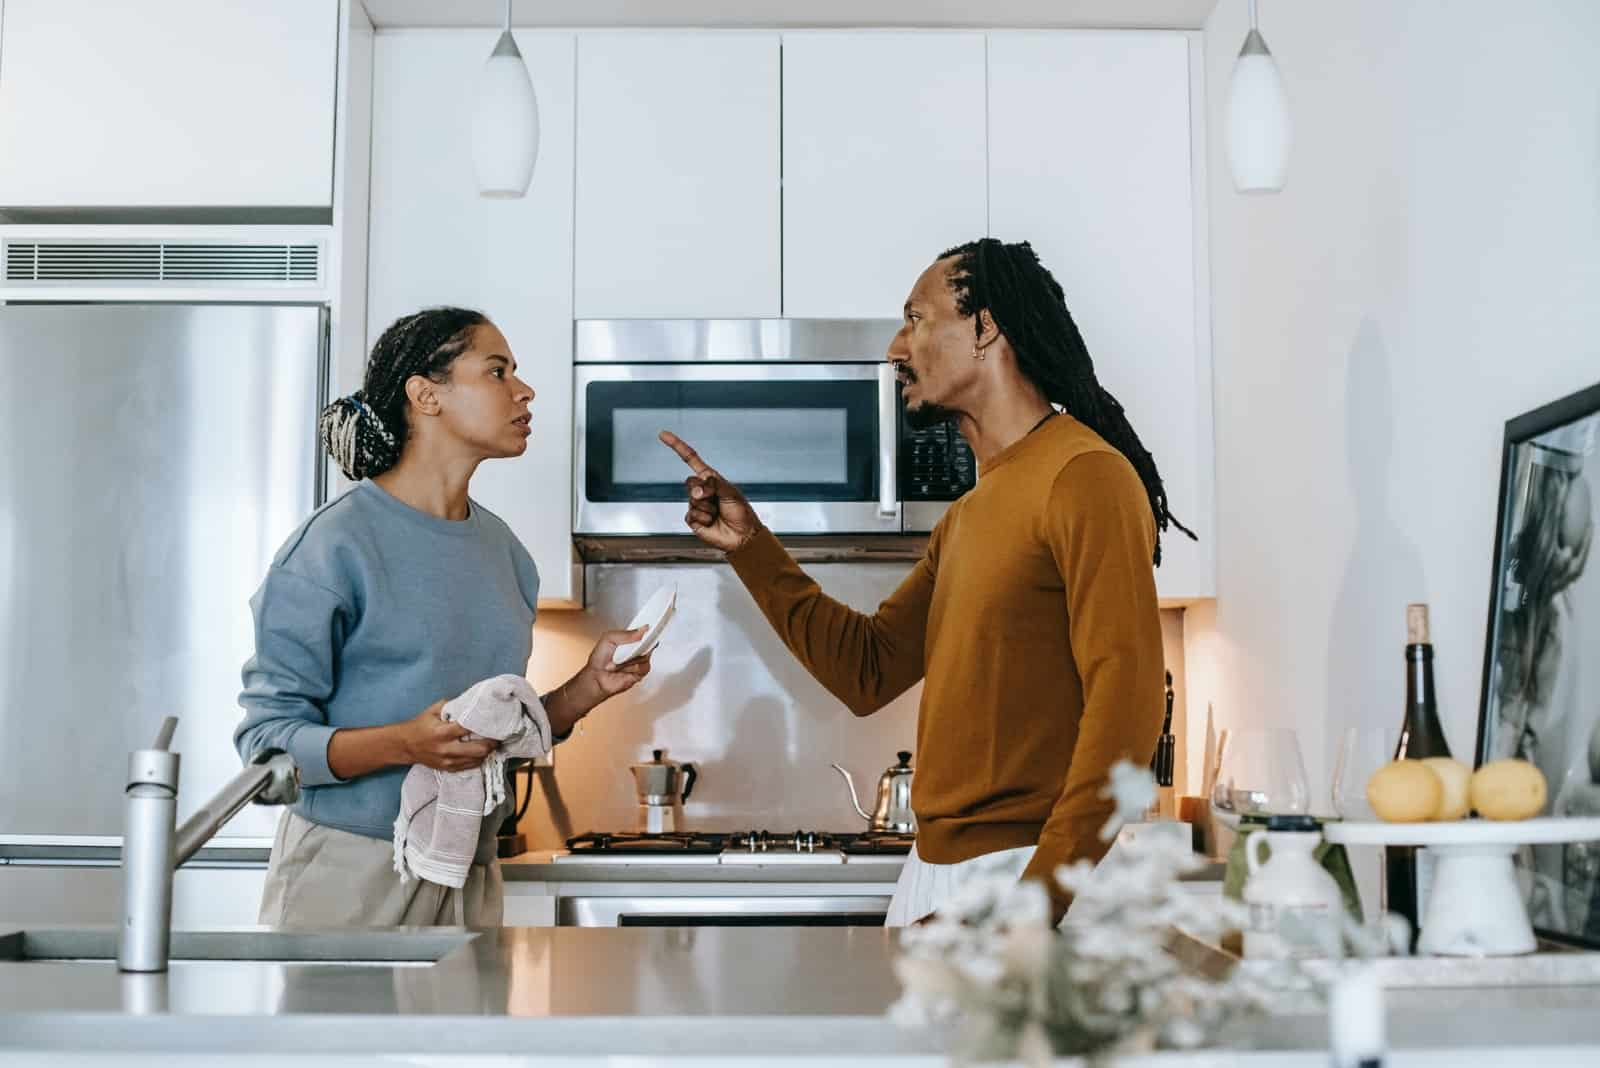 angry man talking to woman in the kitchen